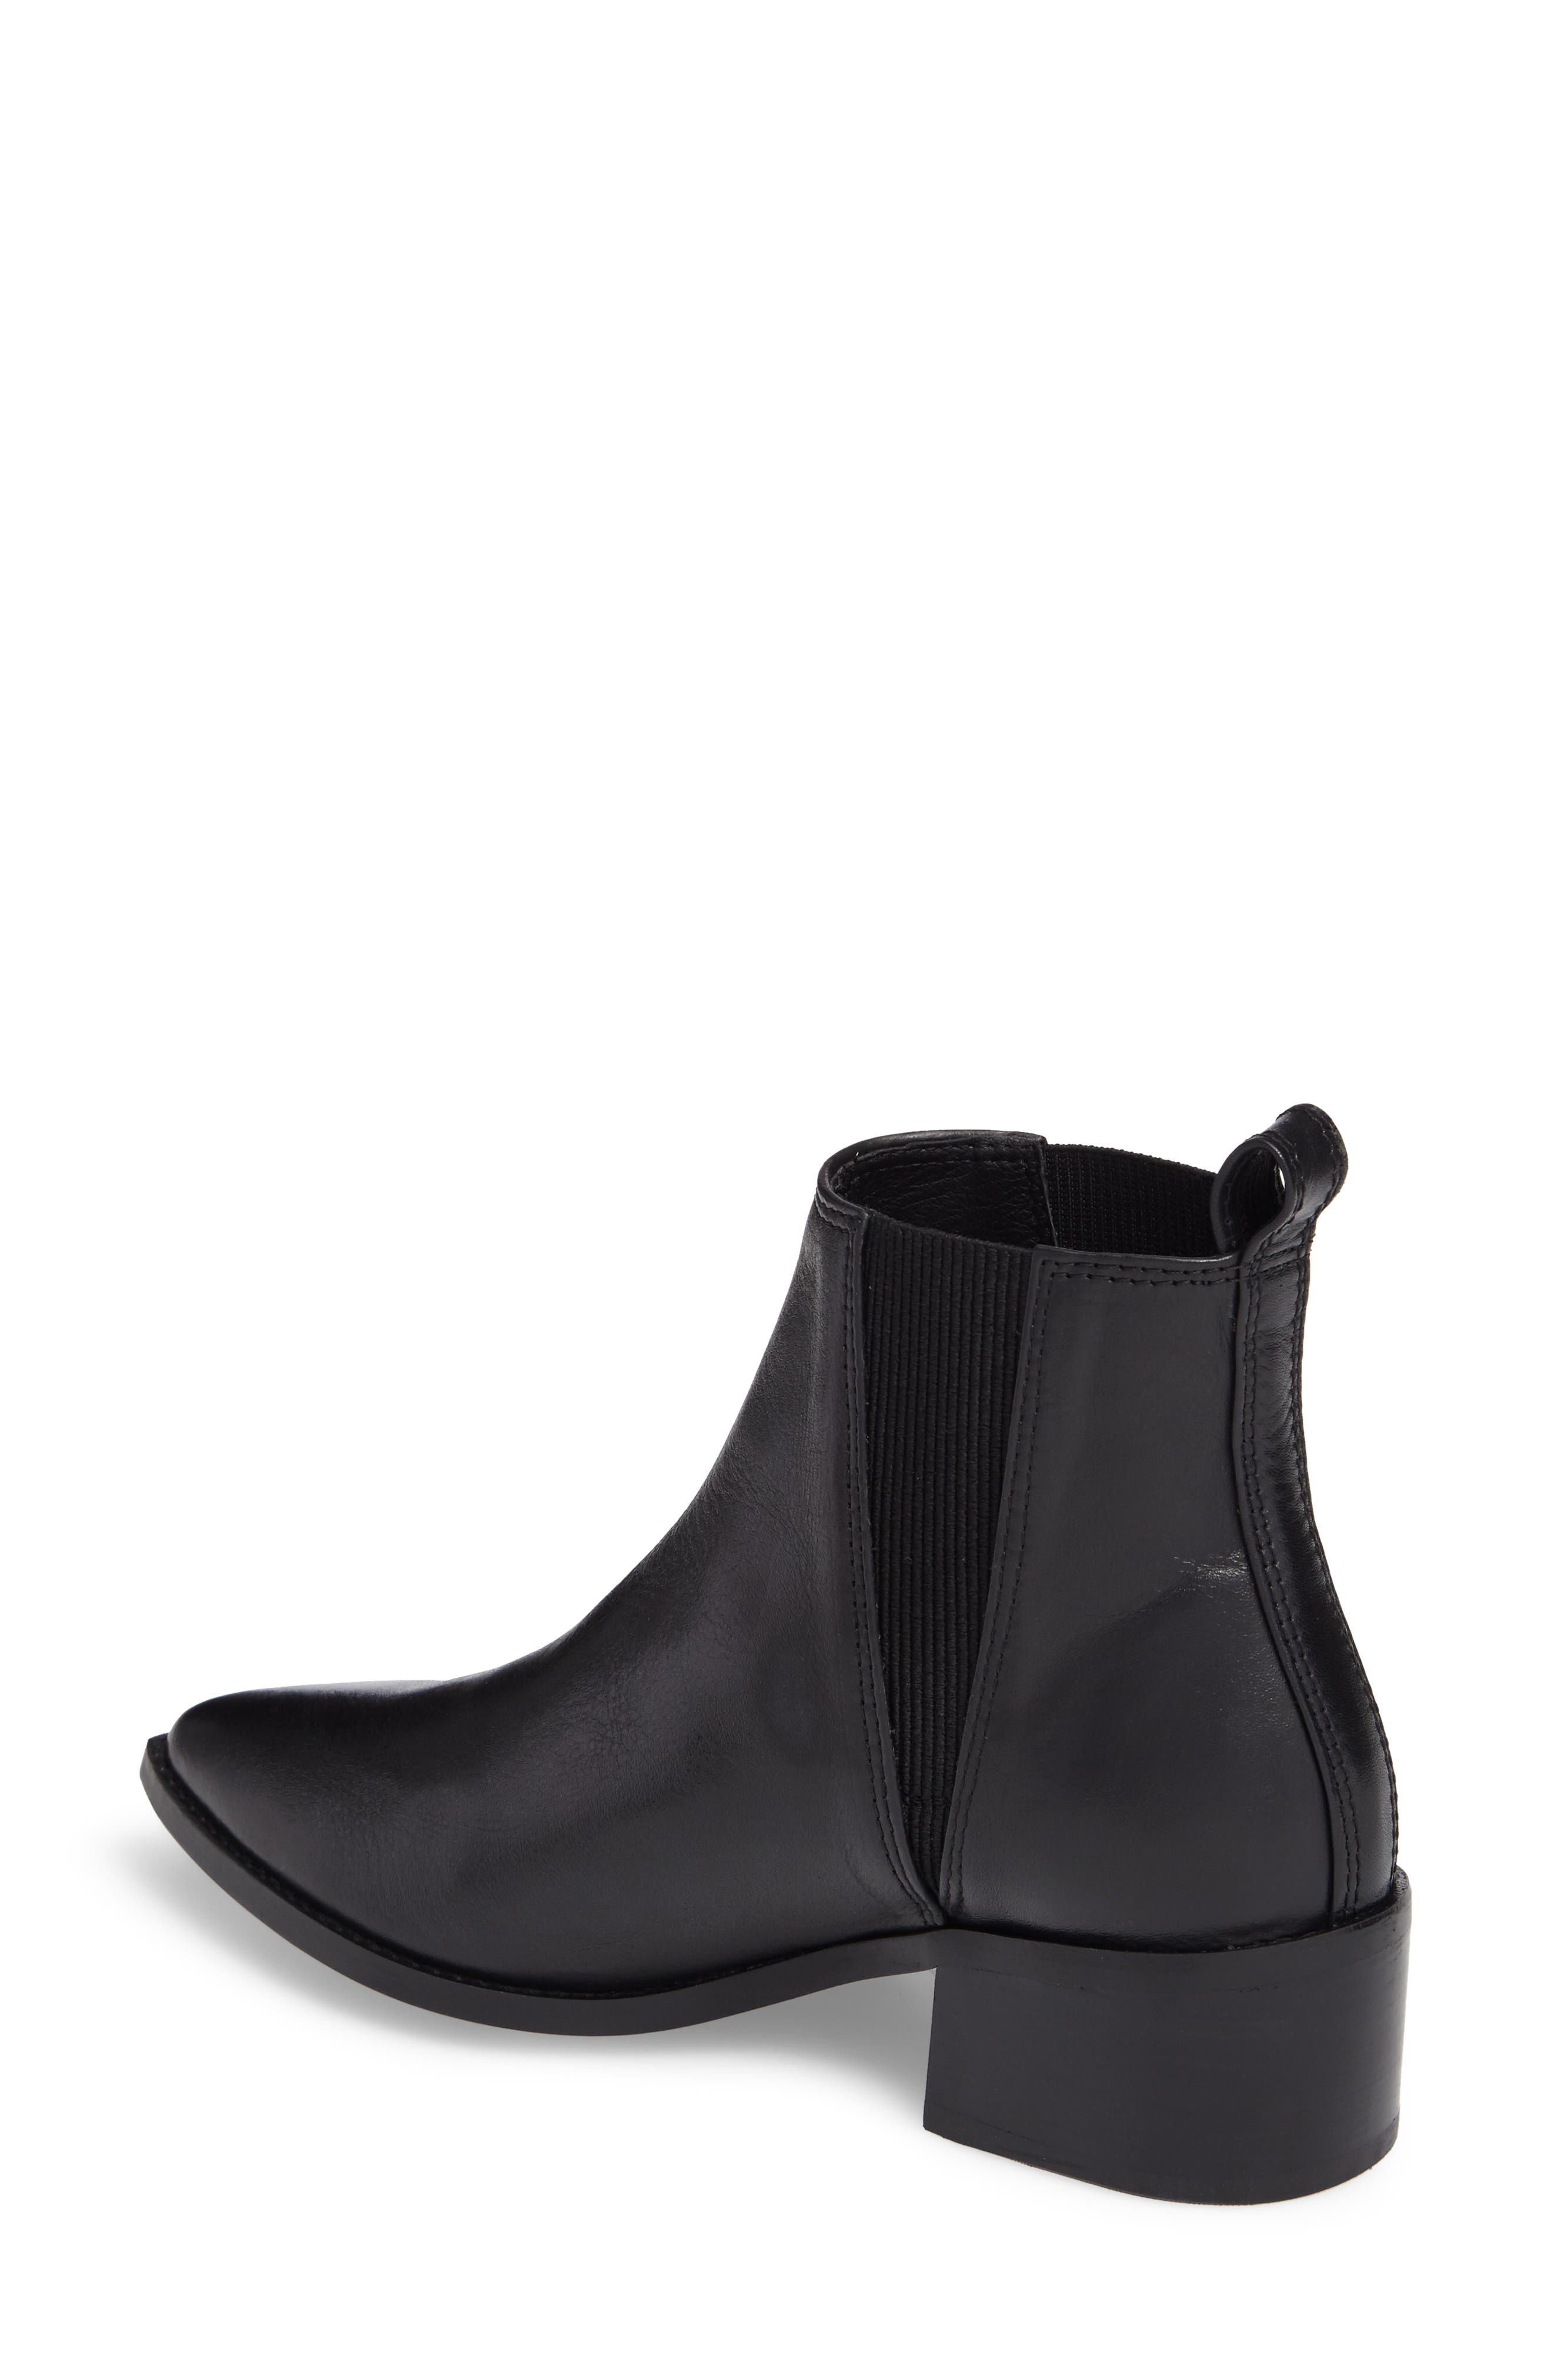 Ula Chelsea Bootie,                             Alternate thumbnail 2, color,                             Black